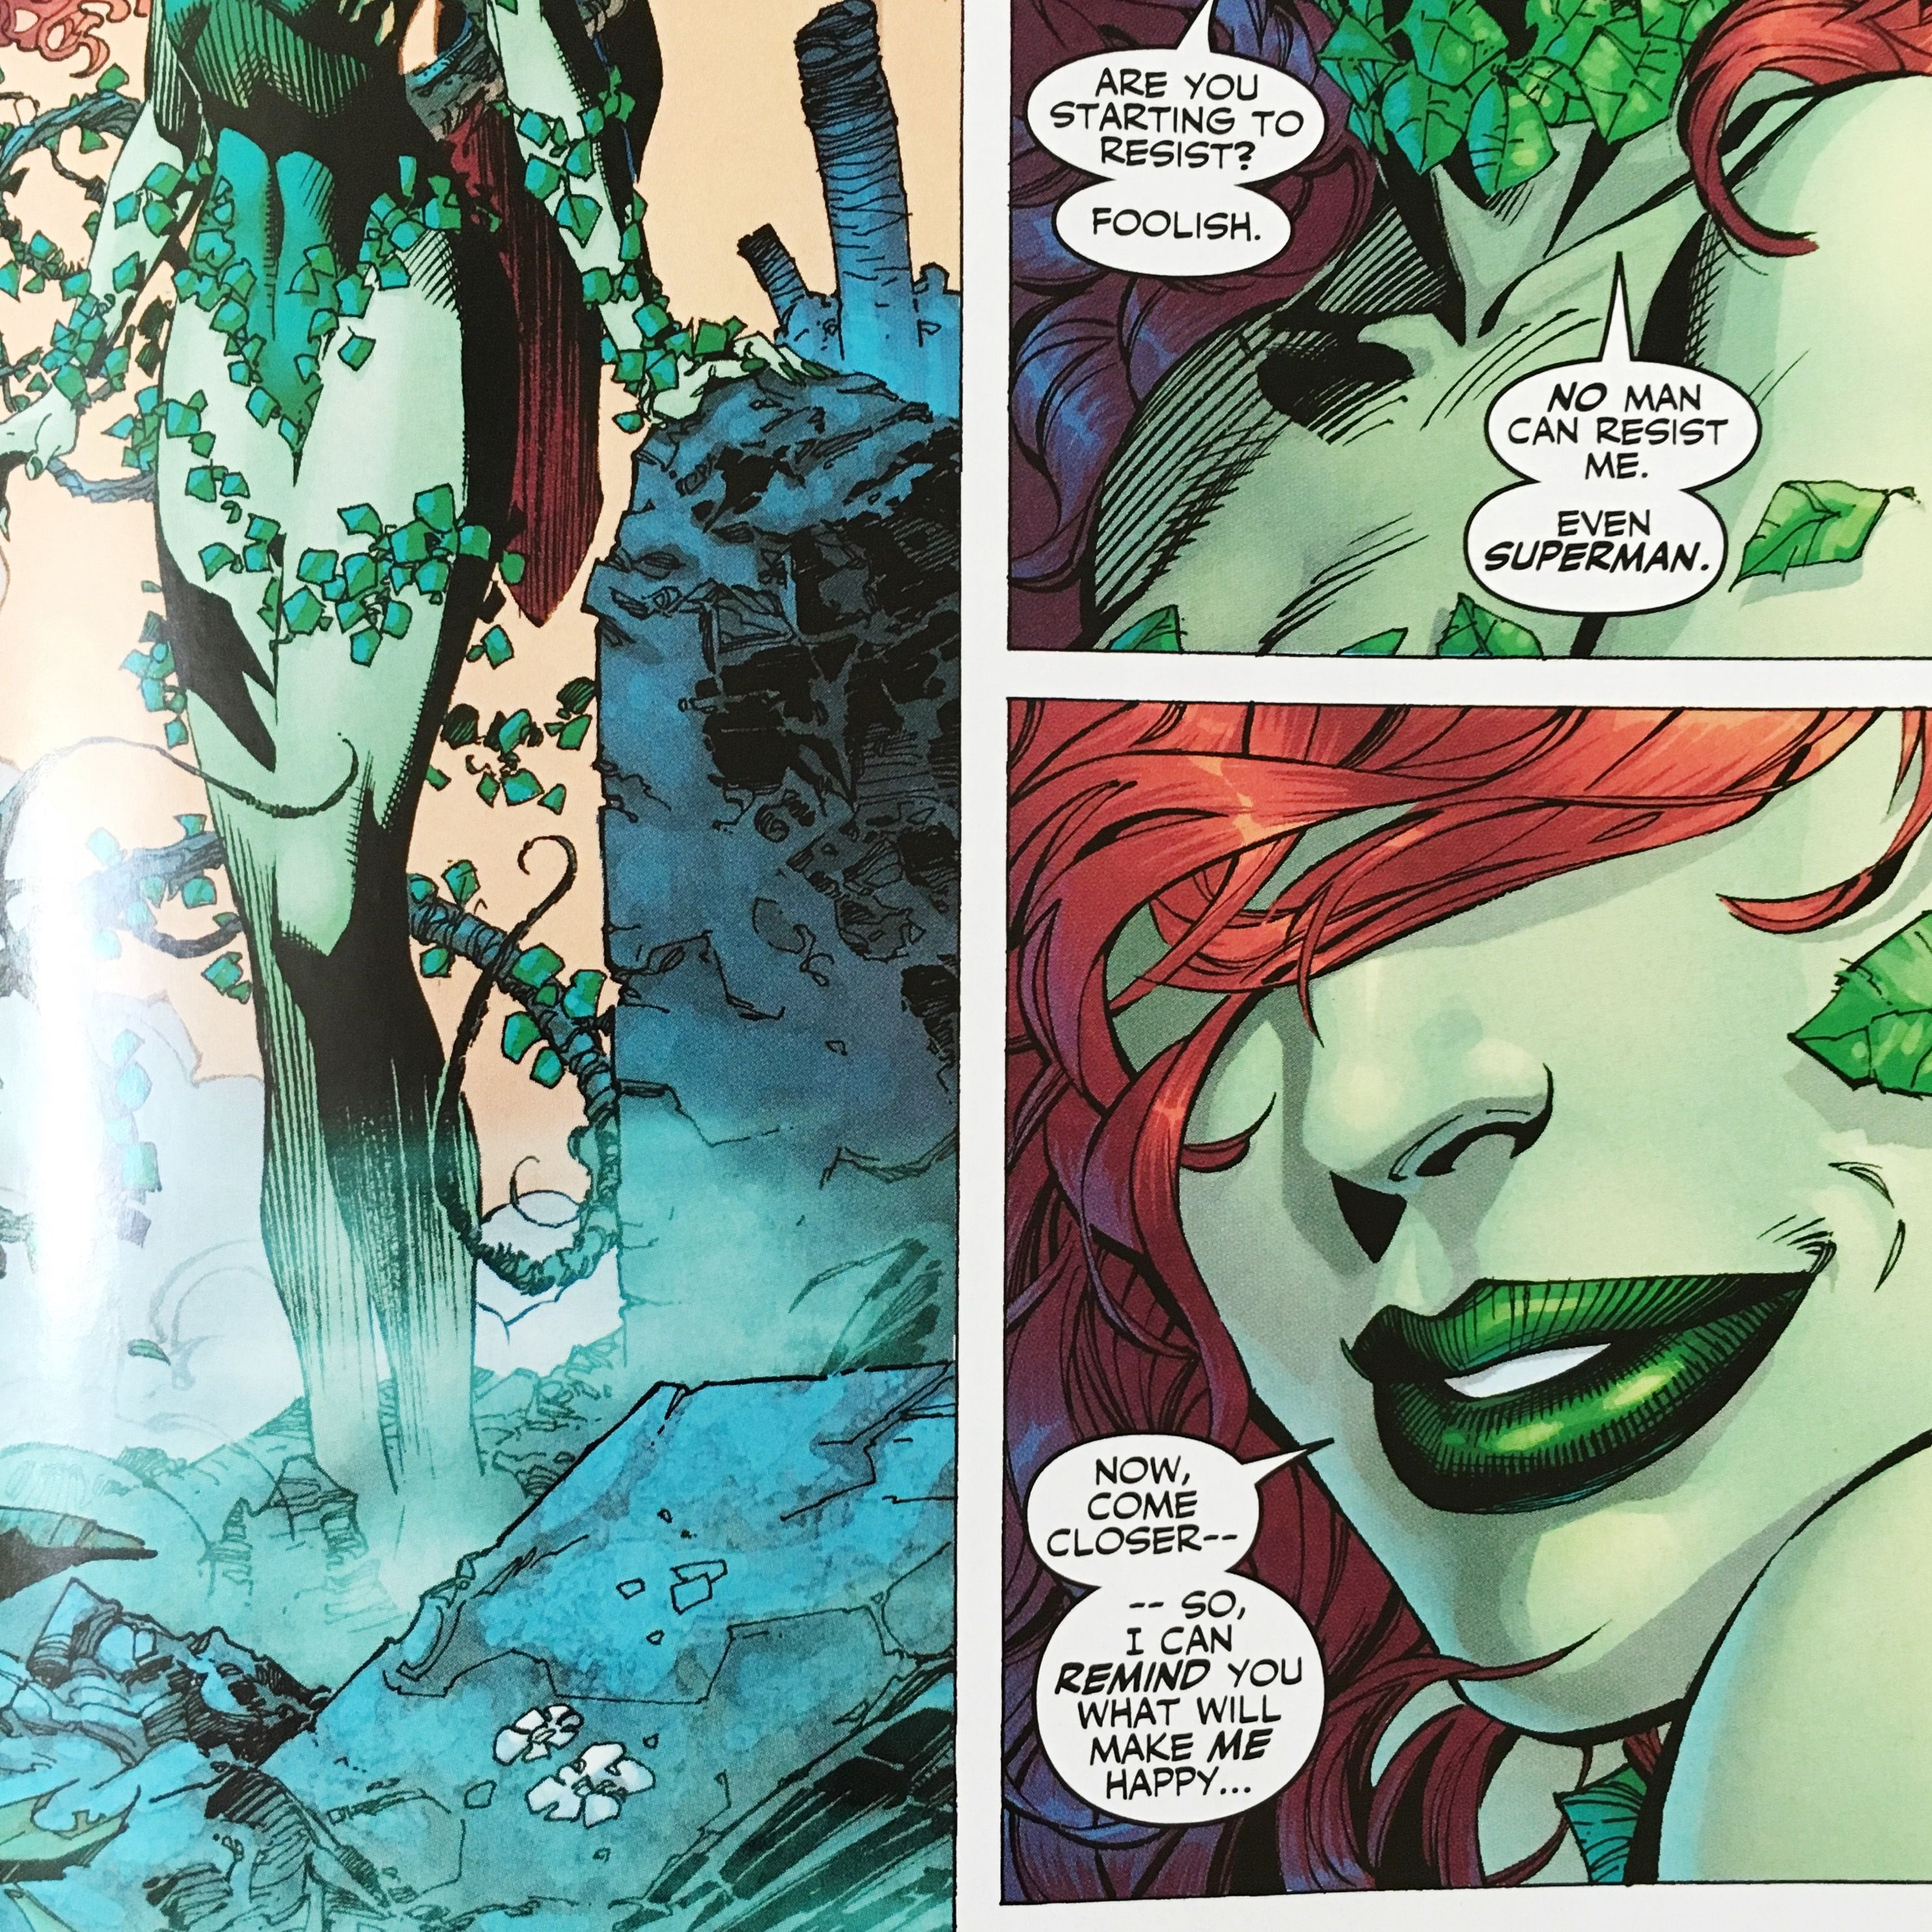 Hush Comic Strip Poison Ivy Superman Poison Ivy Comic Poison Ivy Dc Comics Dc Poison Ivy